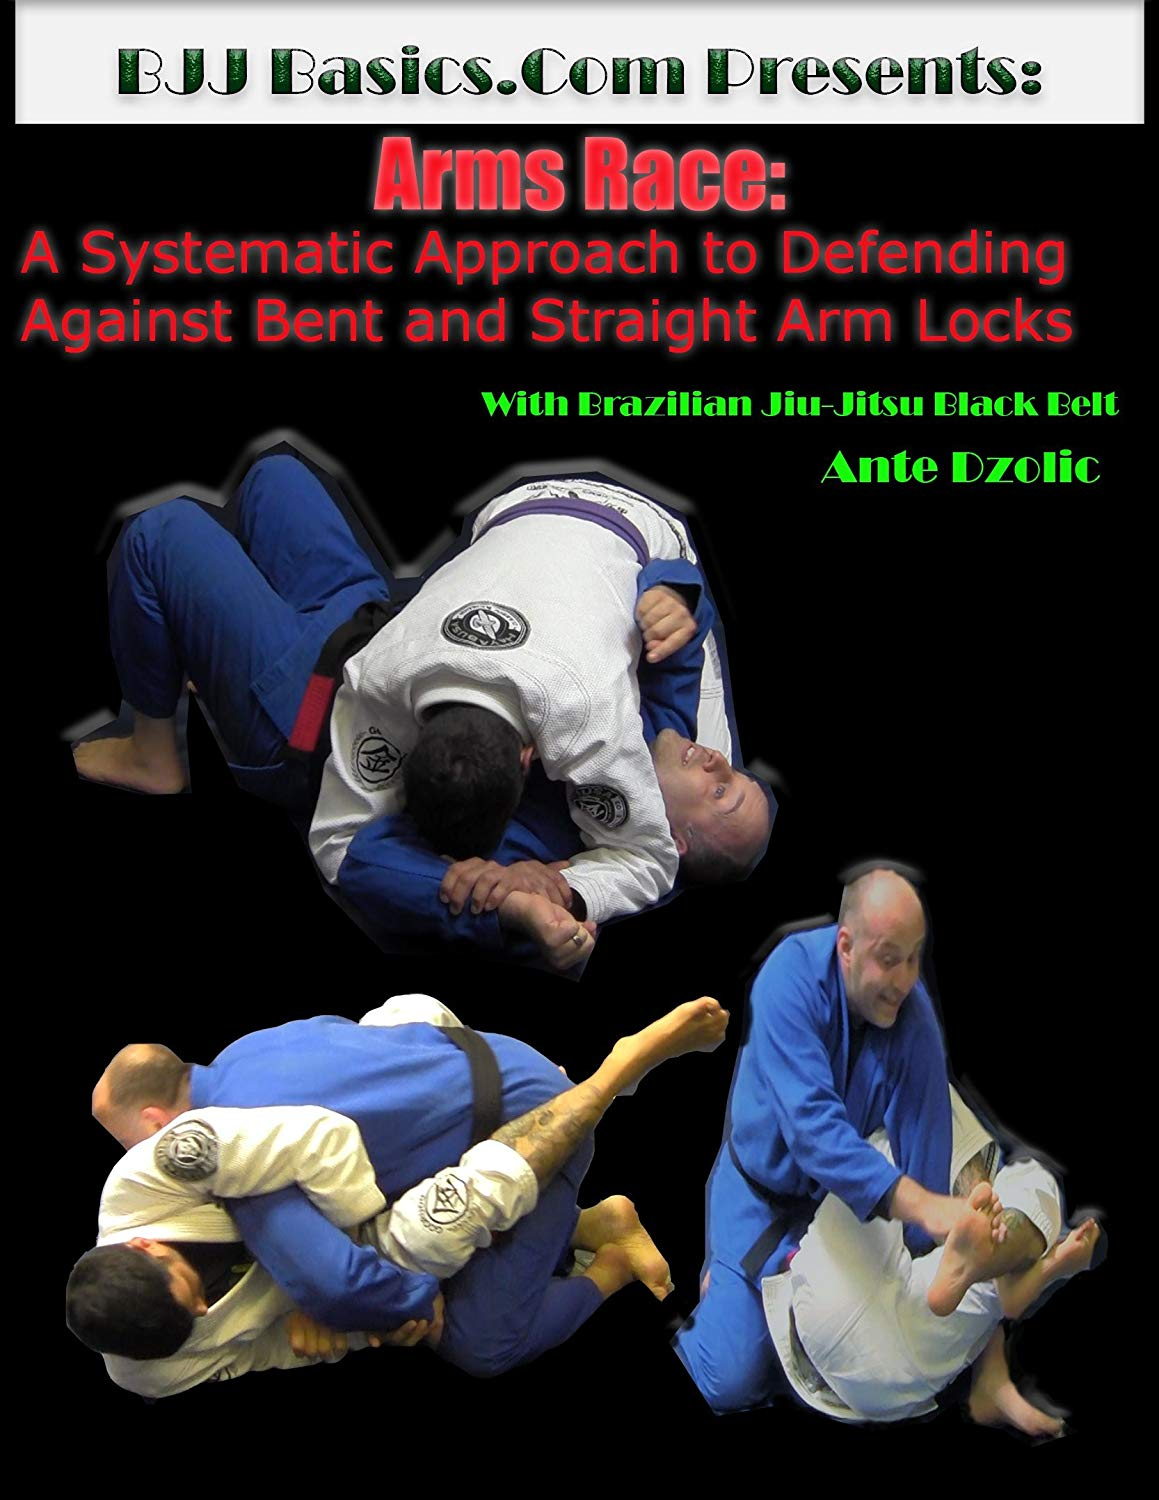 Arms Race DVD: A systematic approach to defending against bent and straight arm locks with Ante Dzolic - Budovideos